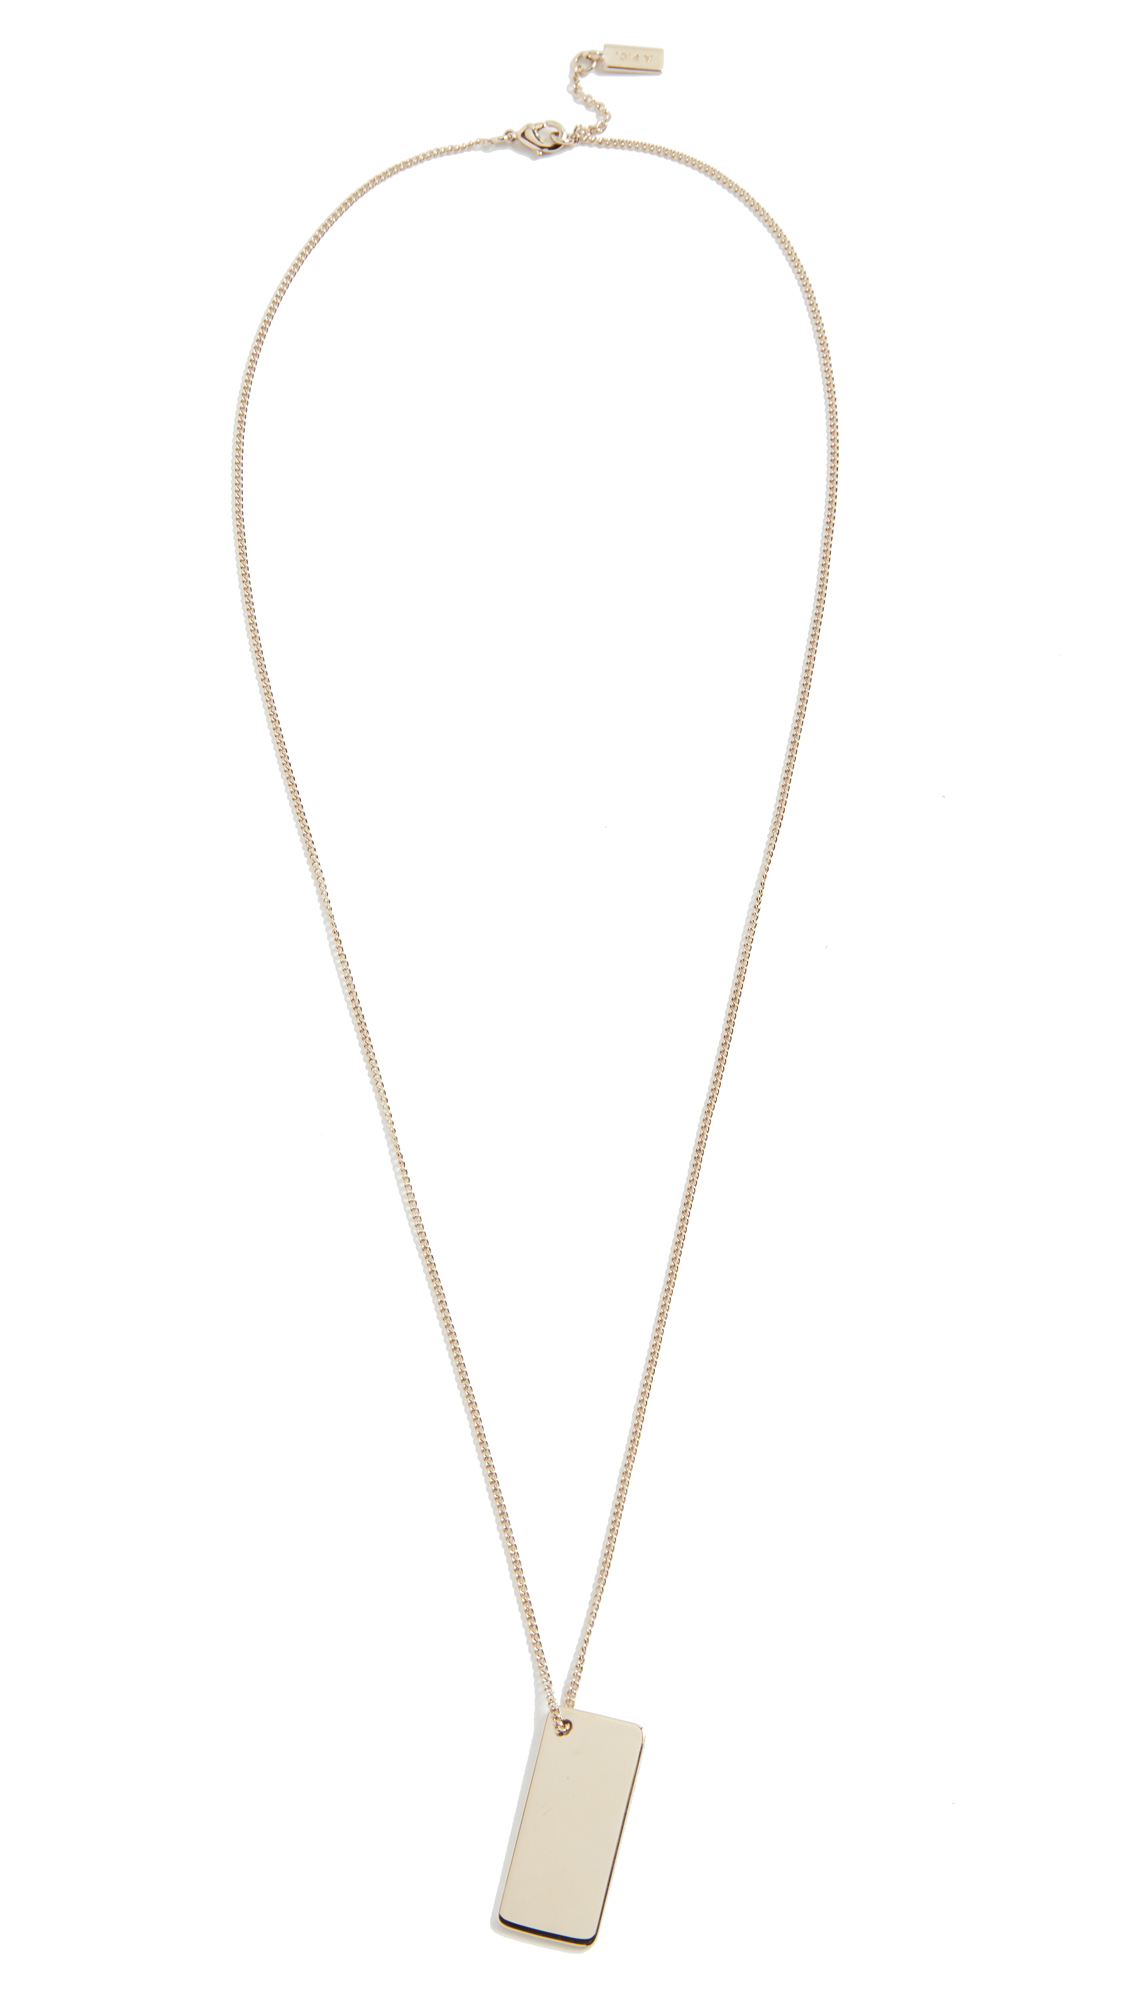 necklace collier apc east for off a use p v dane rubik htm code vp c